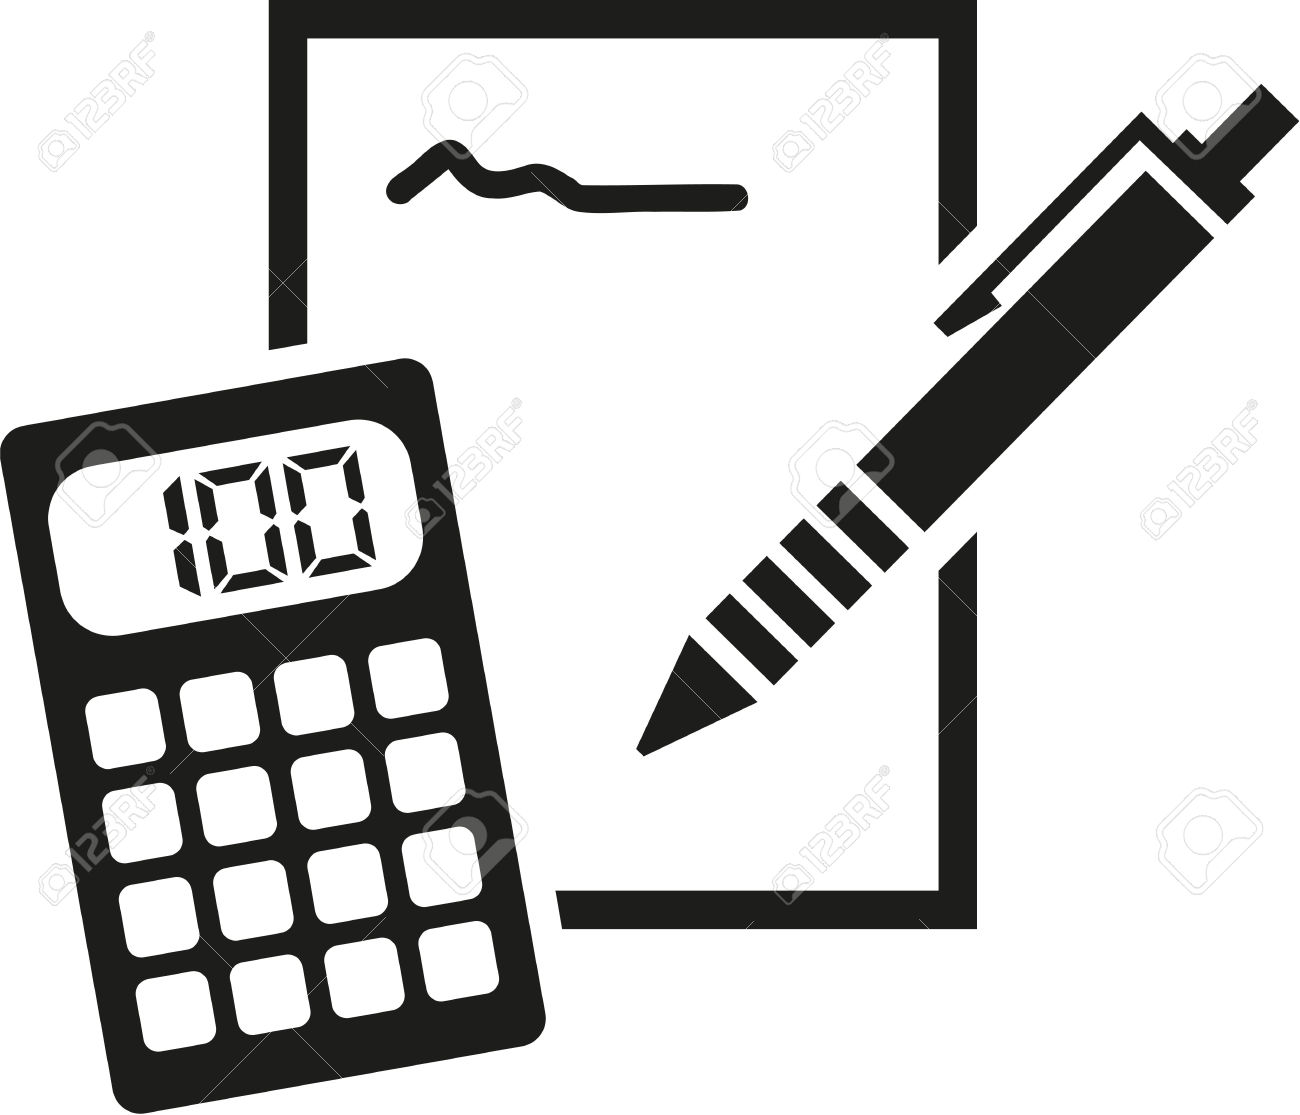 Calculation clipart clip royalty free stock Calculator Clipart Black And White | Free download best Calculator ... clip royalty free stock